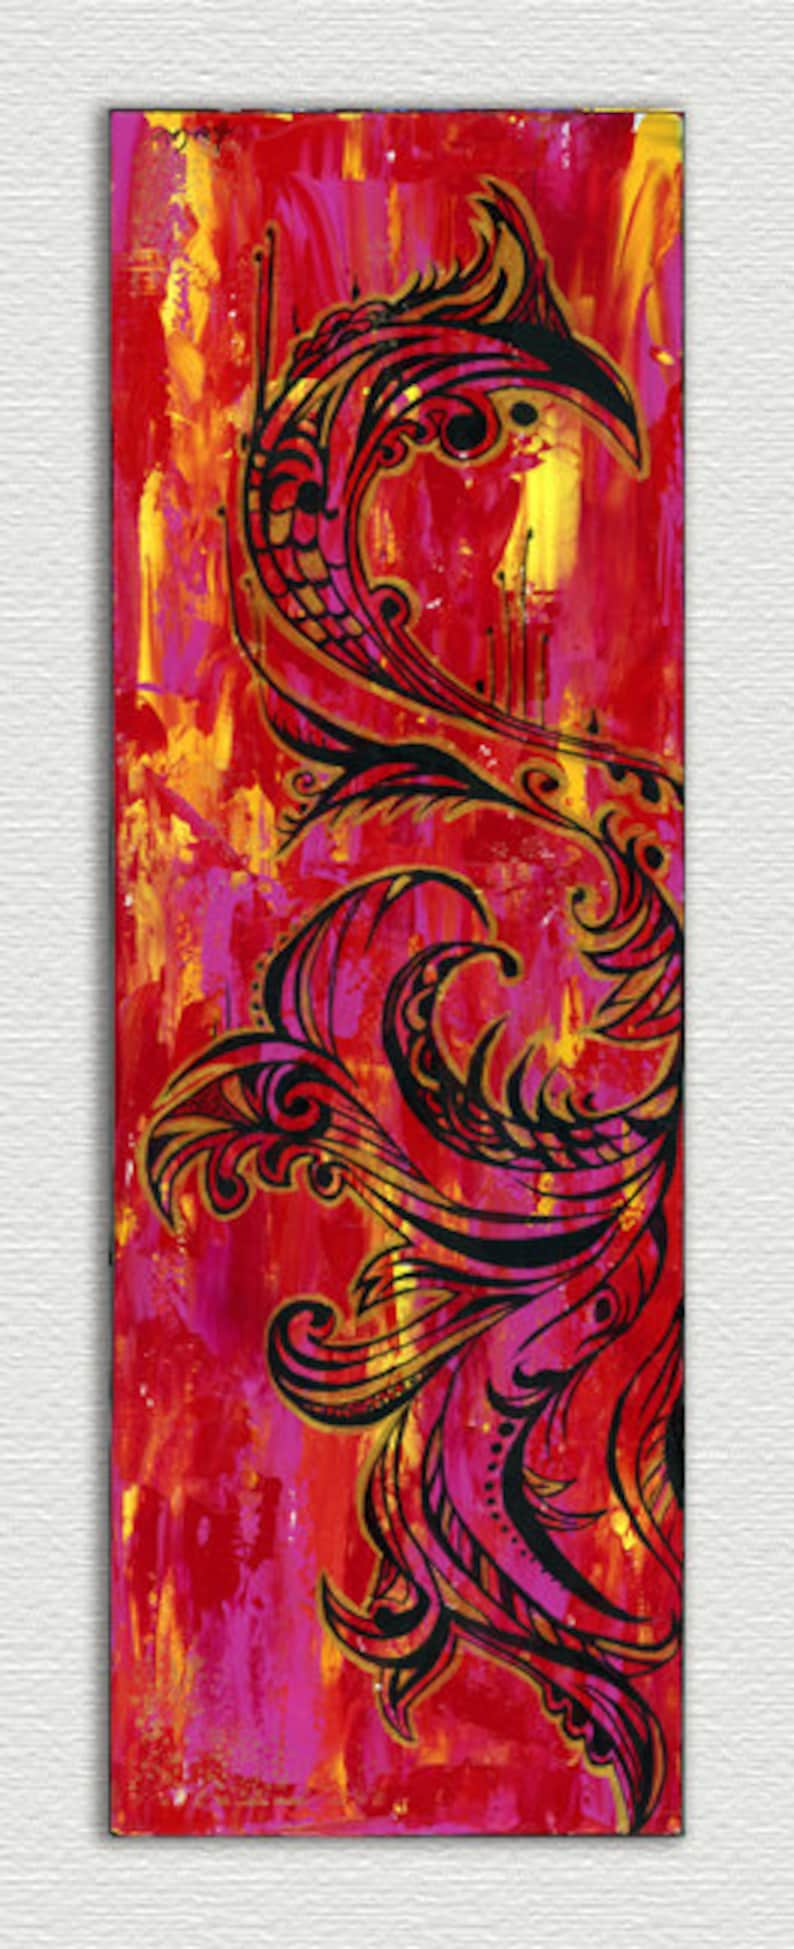 Wall Art Abstract Painting Red And Metallic Gold 10 X30 Original Acrylic Painting Wall Decor